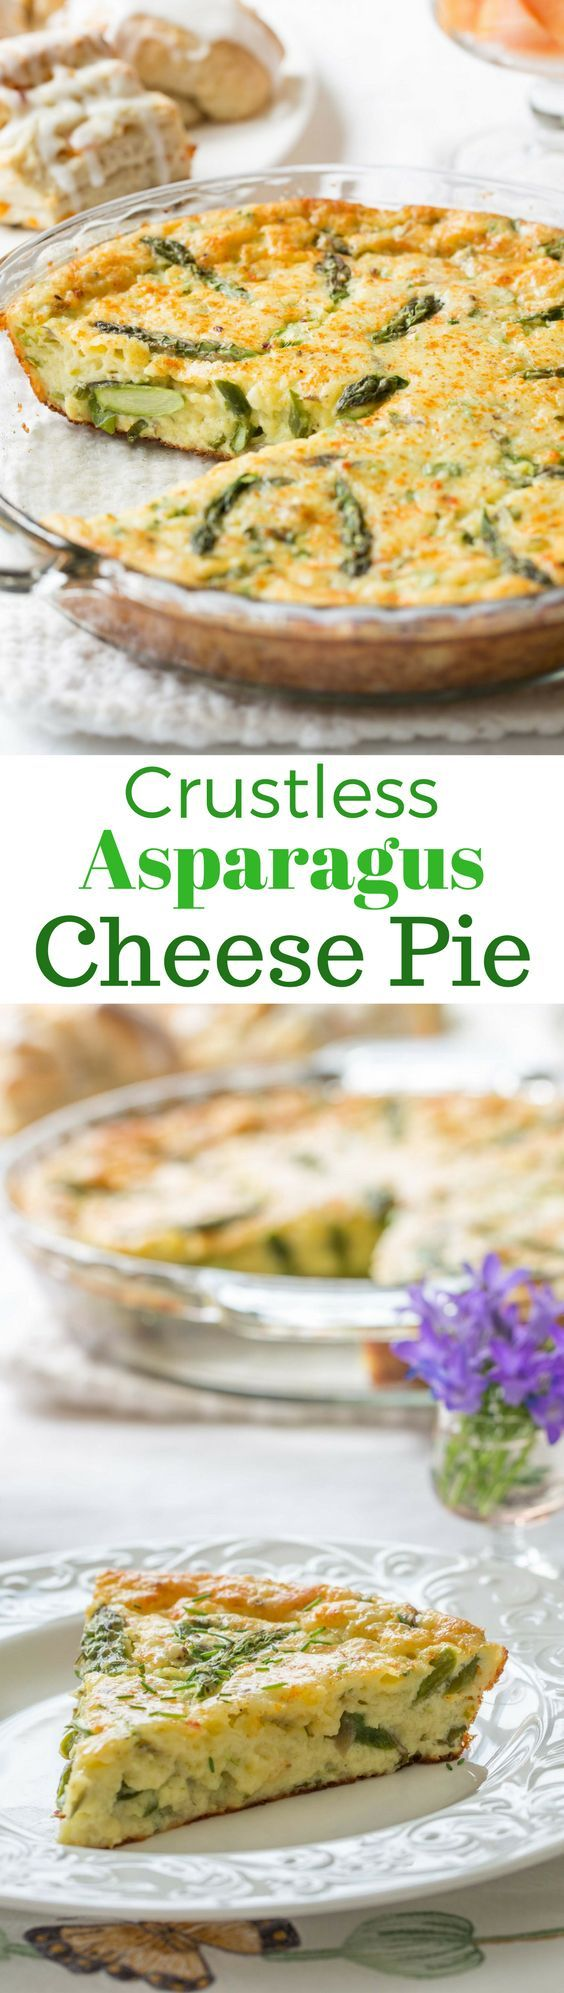 A wonderfully easy, and cheesy pie made with eggs, asparagus, and onions. A great brunch recipe served warm or at room temperature. www.savingdessert.com